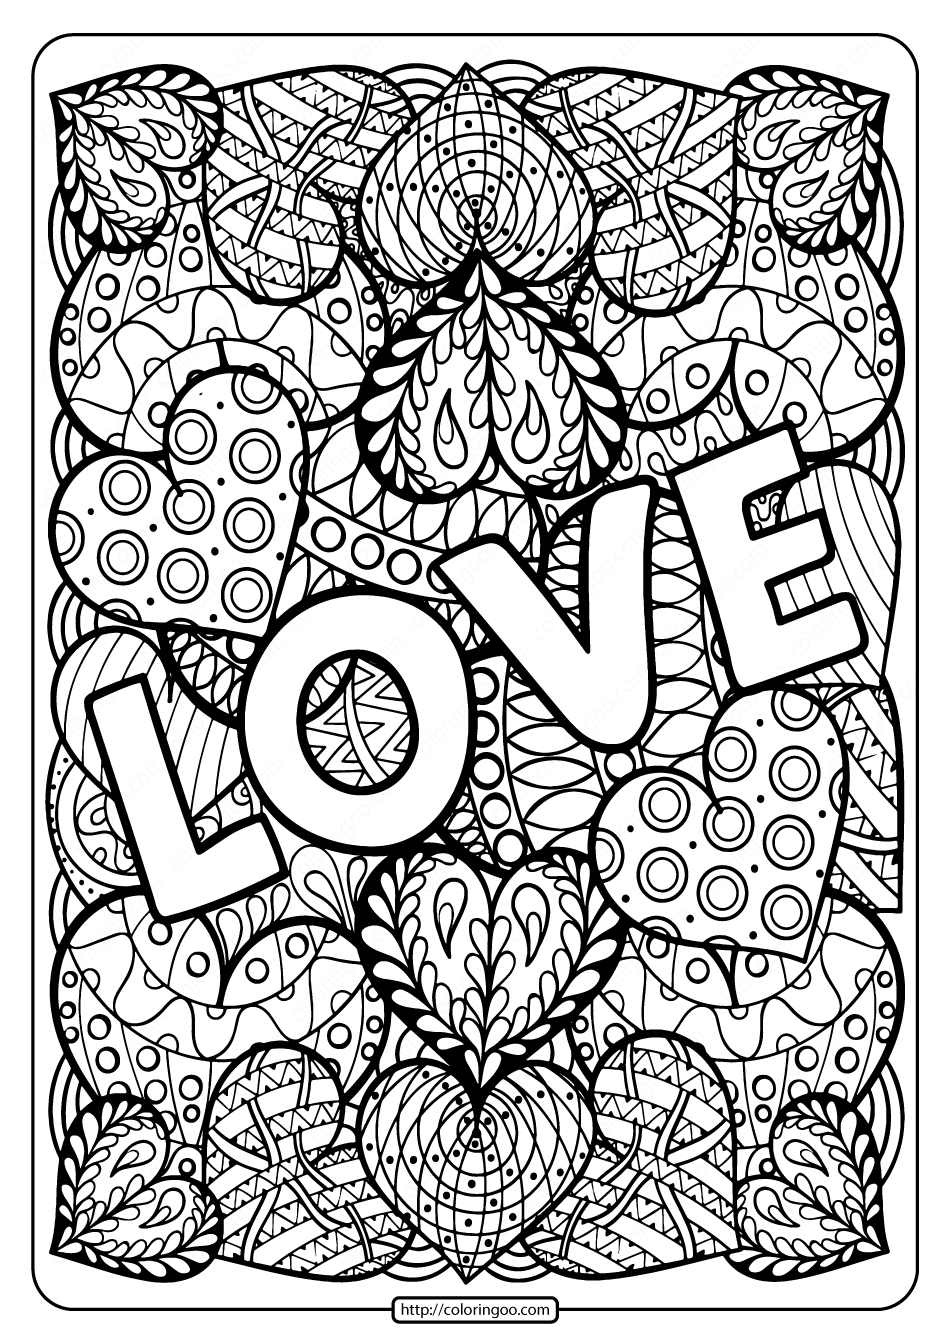 Free Printable Love Pdf Coloring Page Coloring Pages Love Coloring Pages Free Coloring Pages